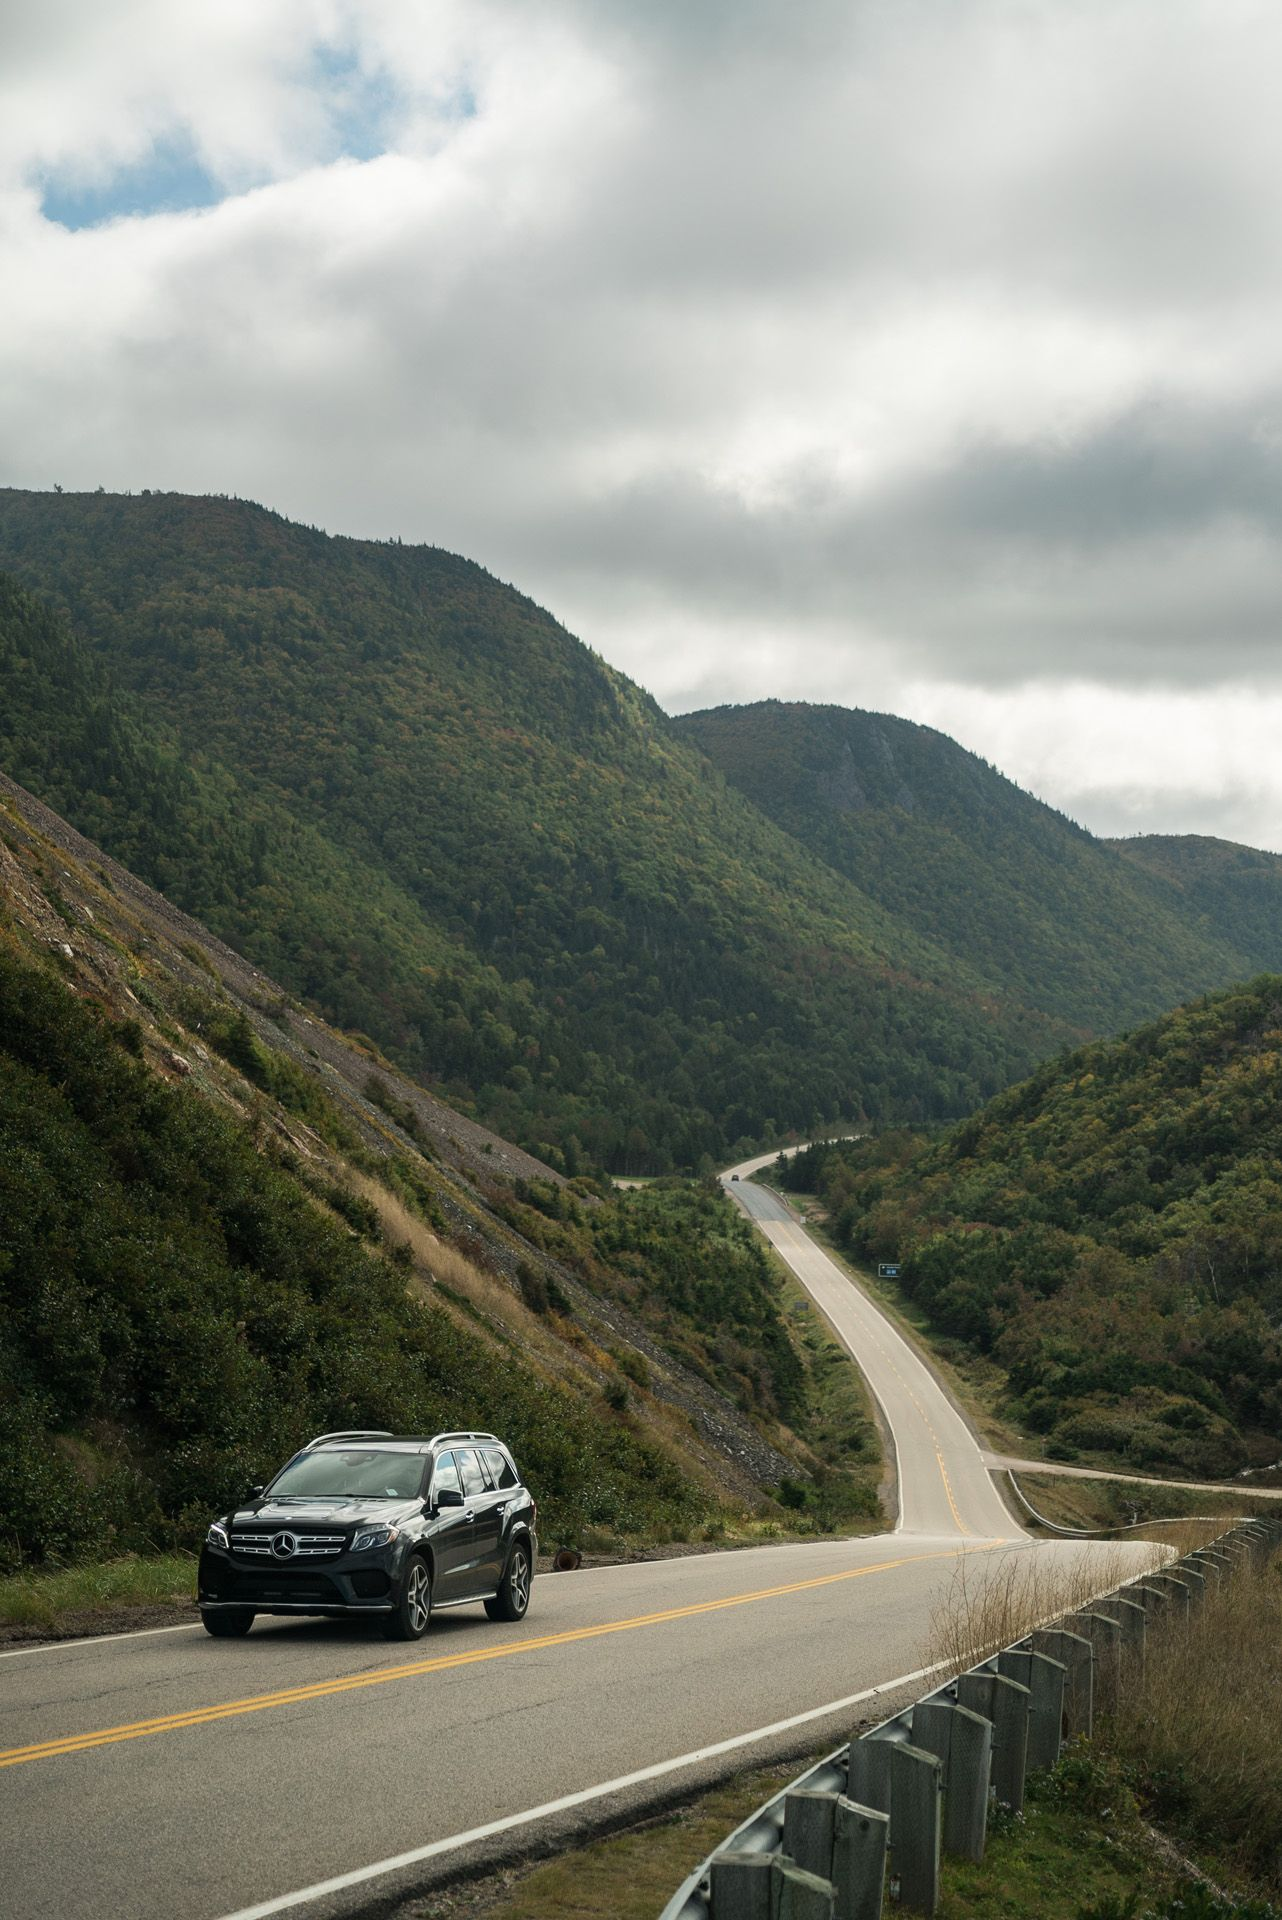 mercedes benz car on the road in between mountains by Bruno Florin for Mercedes Magazine